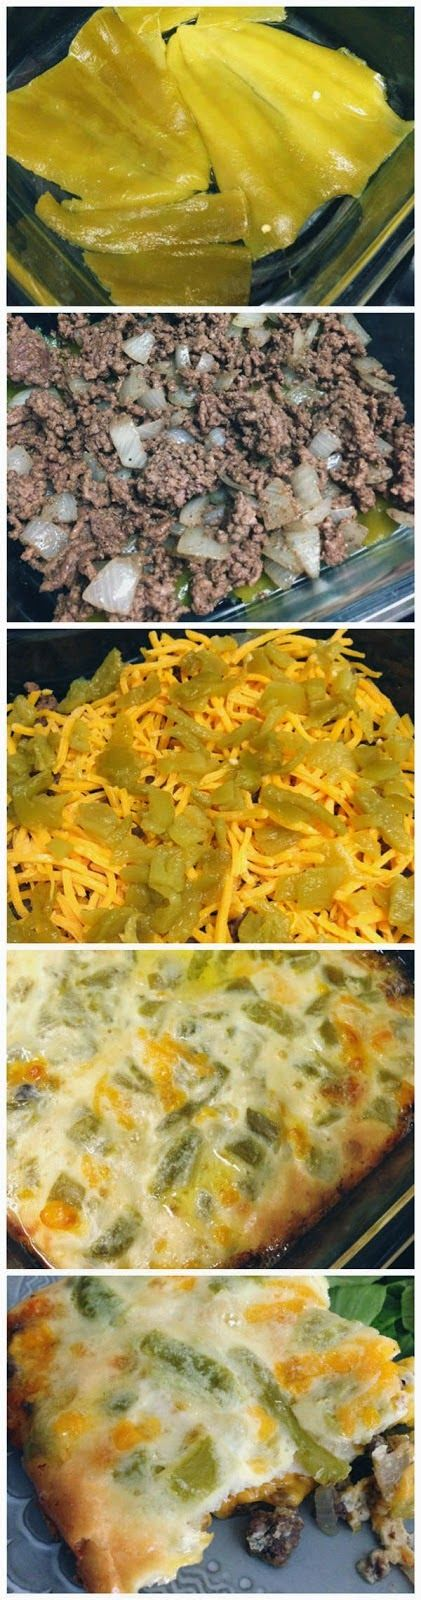 Chile Rellenos Casserole- doubled the meat and made with all purpose flour but only 14 carbs for the whole dish- I'll use Jalapenos because my family likes it hot!